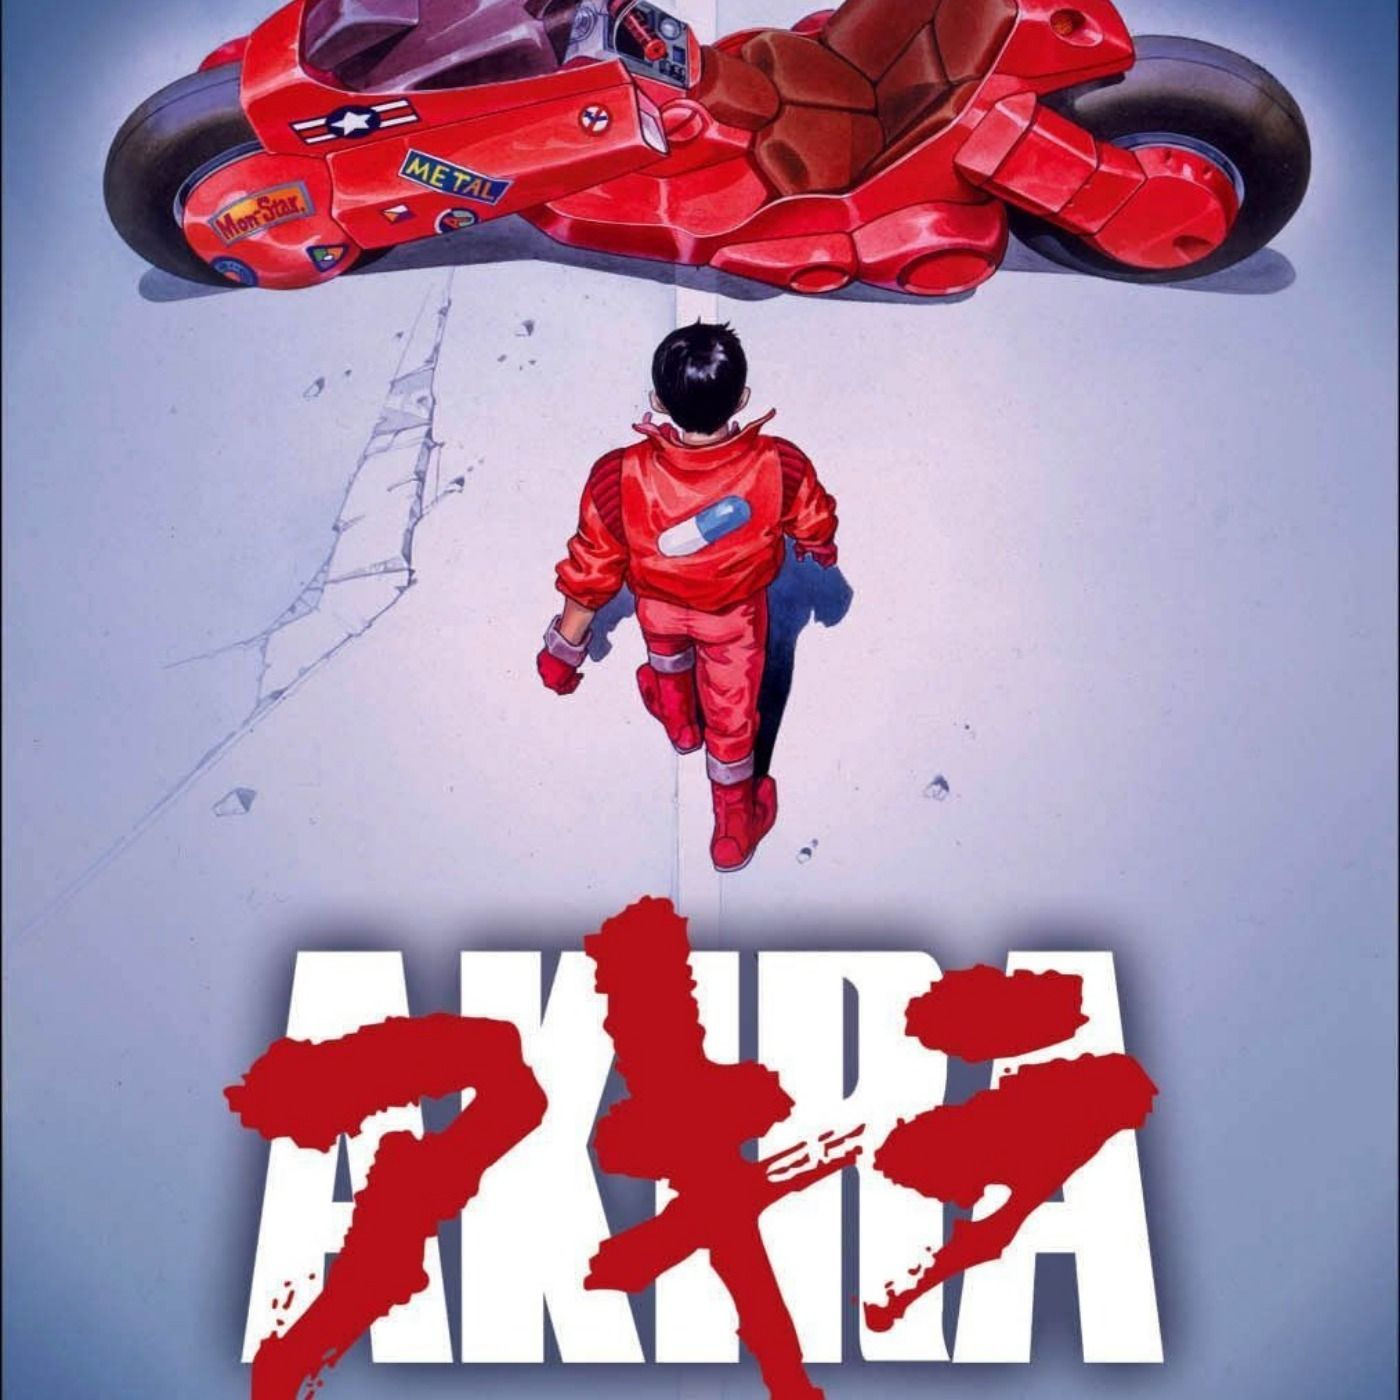 PODCAST CINEMA | CRITIQUE DU FILM Akira